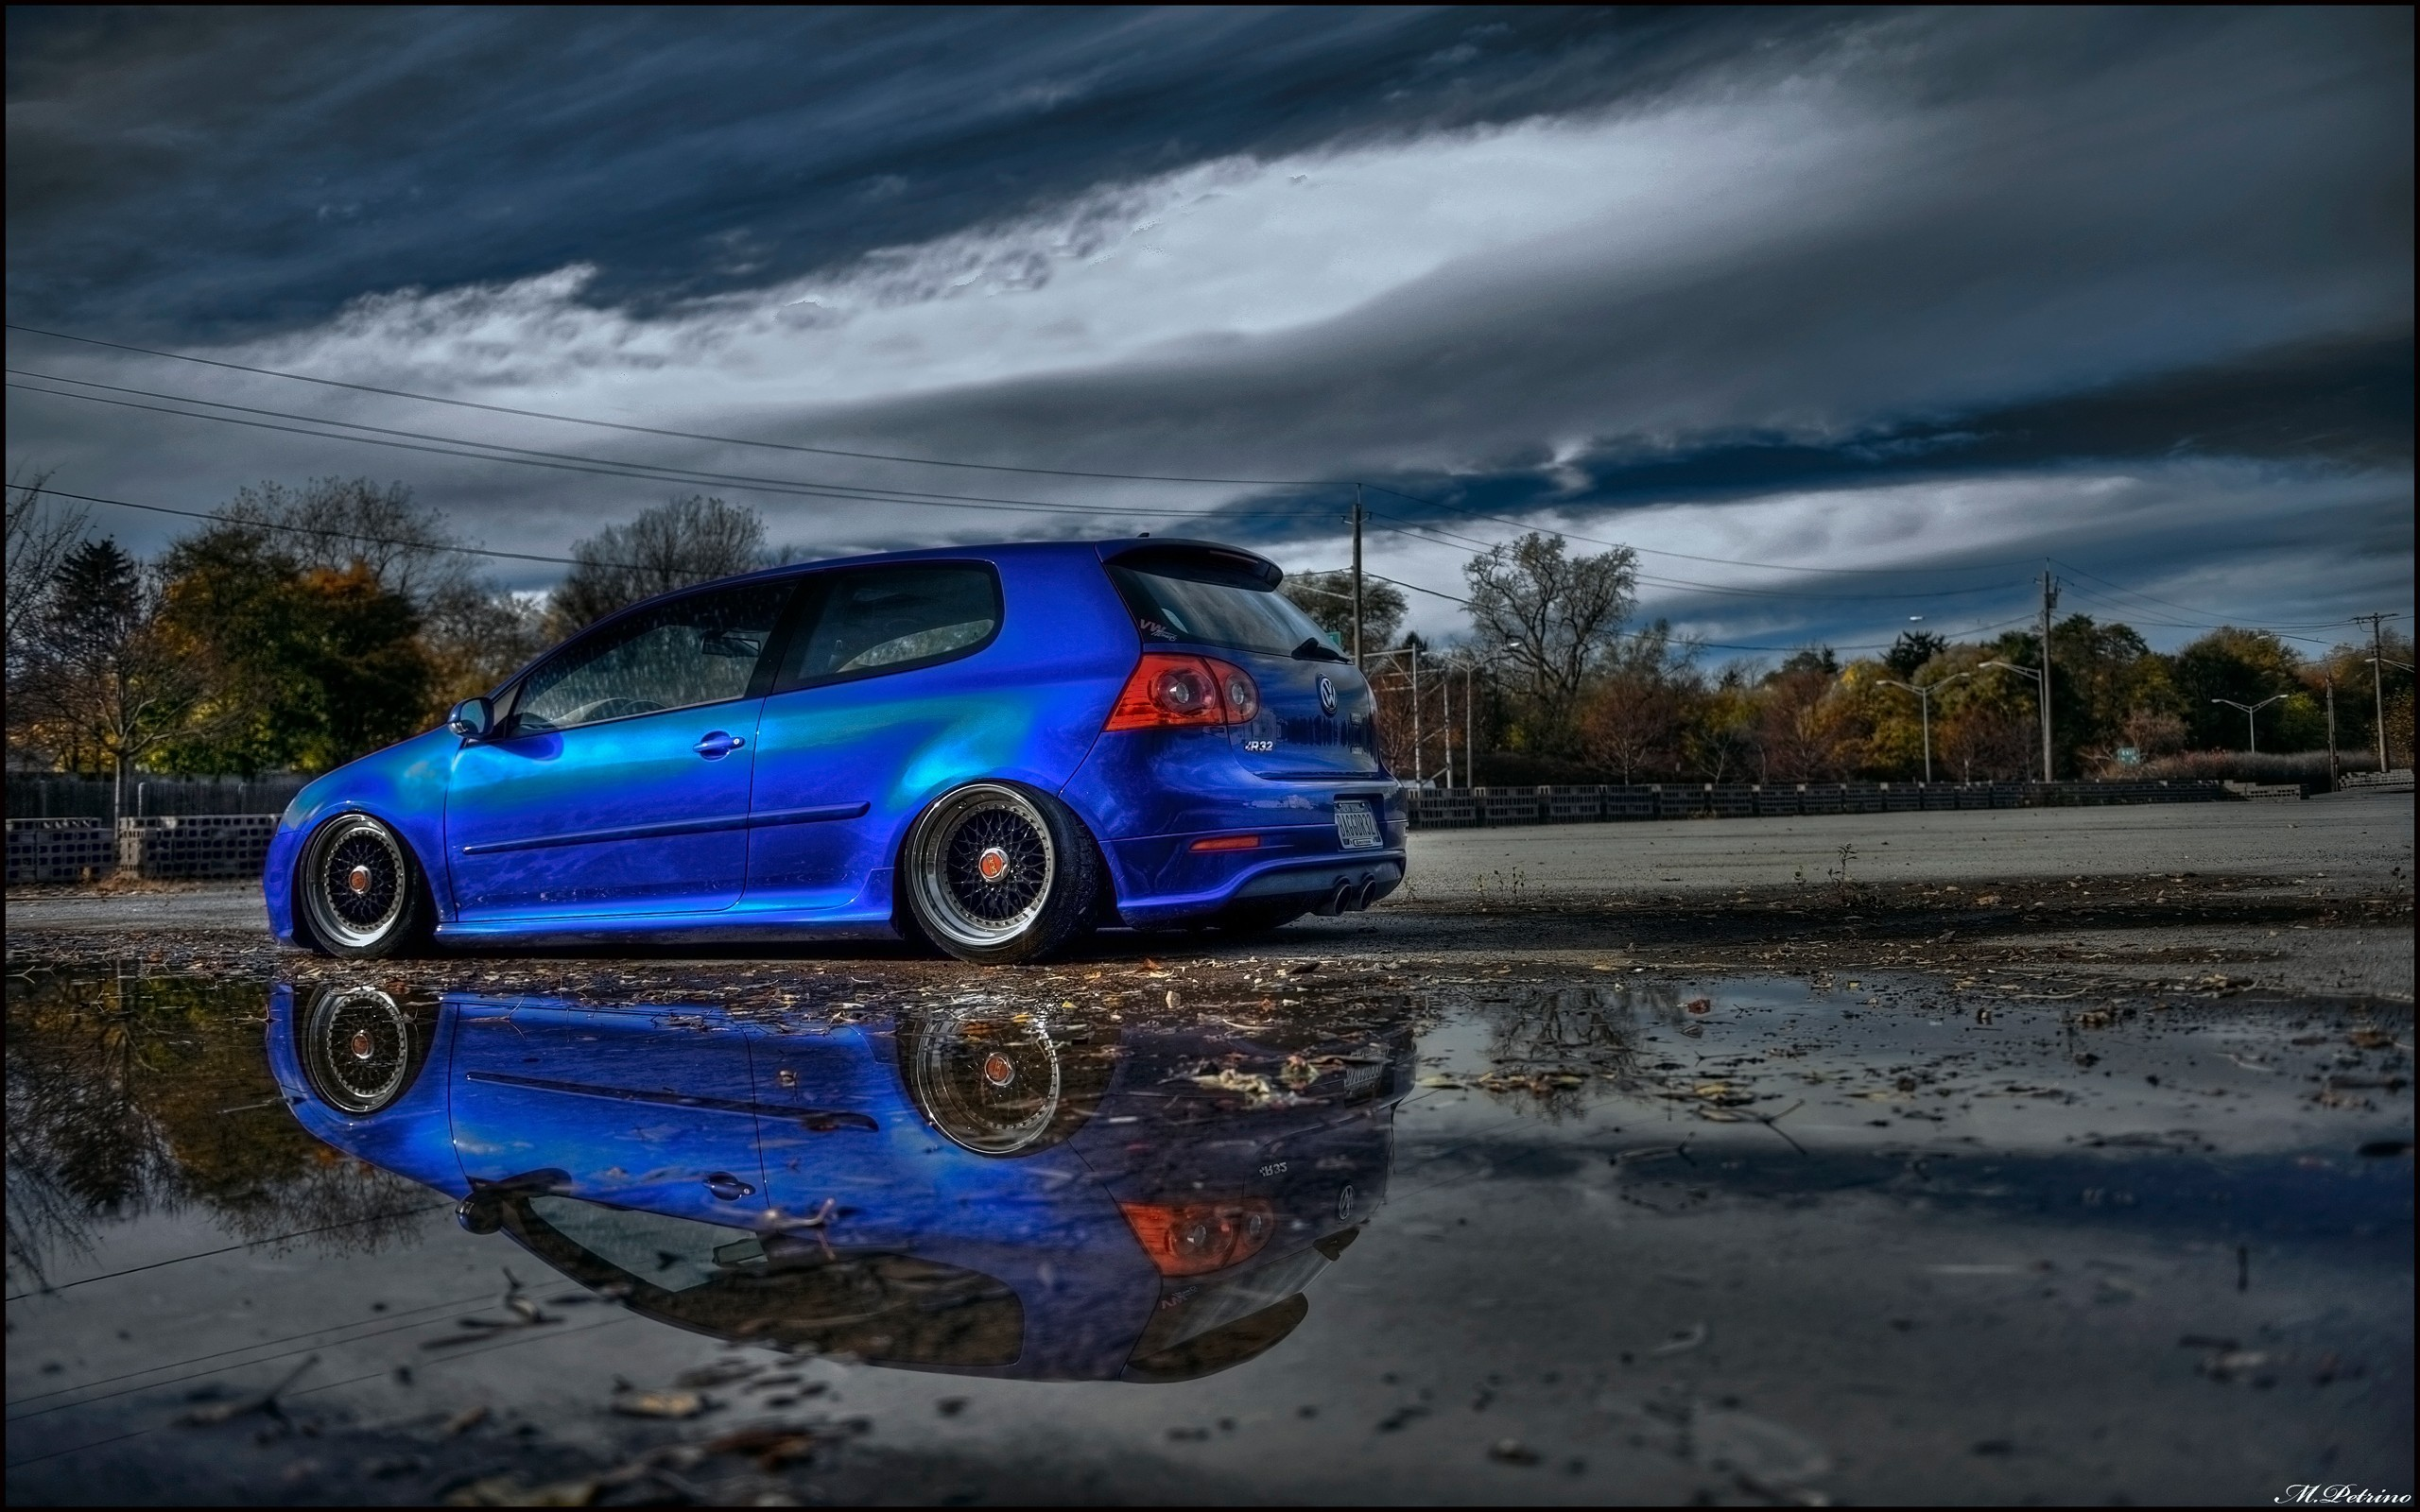 cars HDR Photography Volkswagen HD Wallpaper